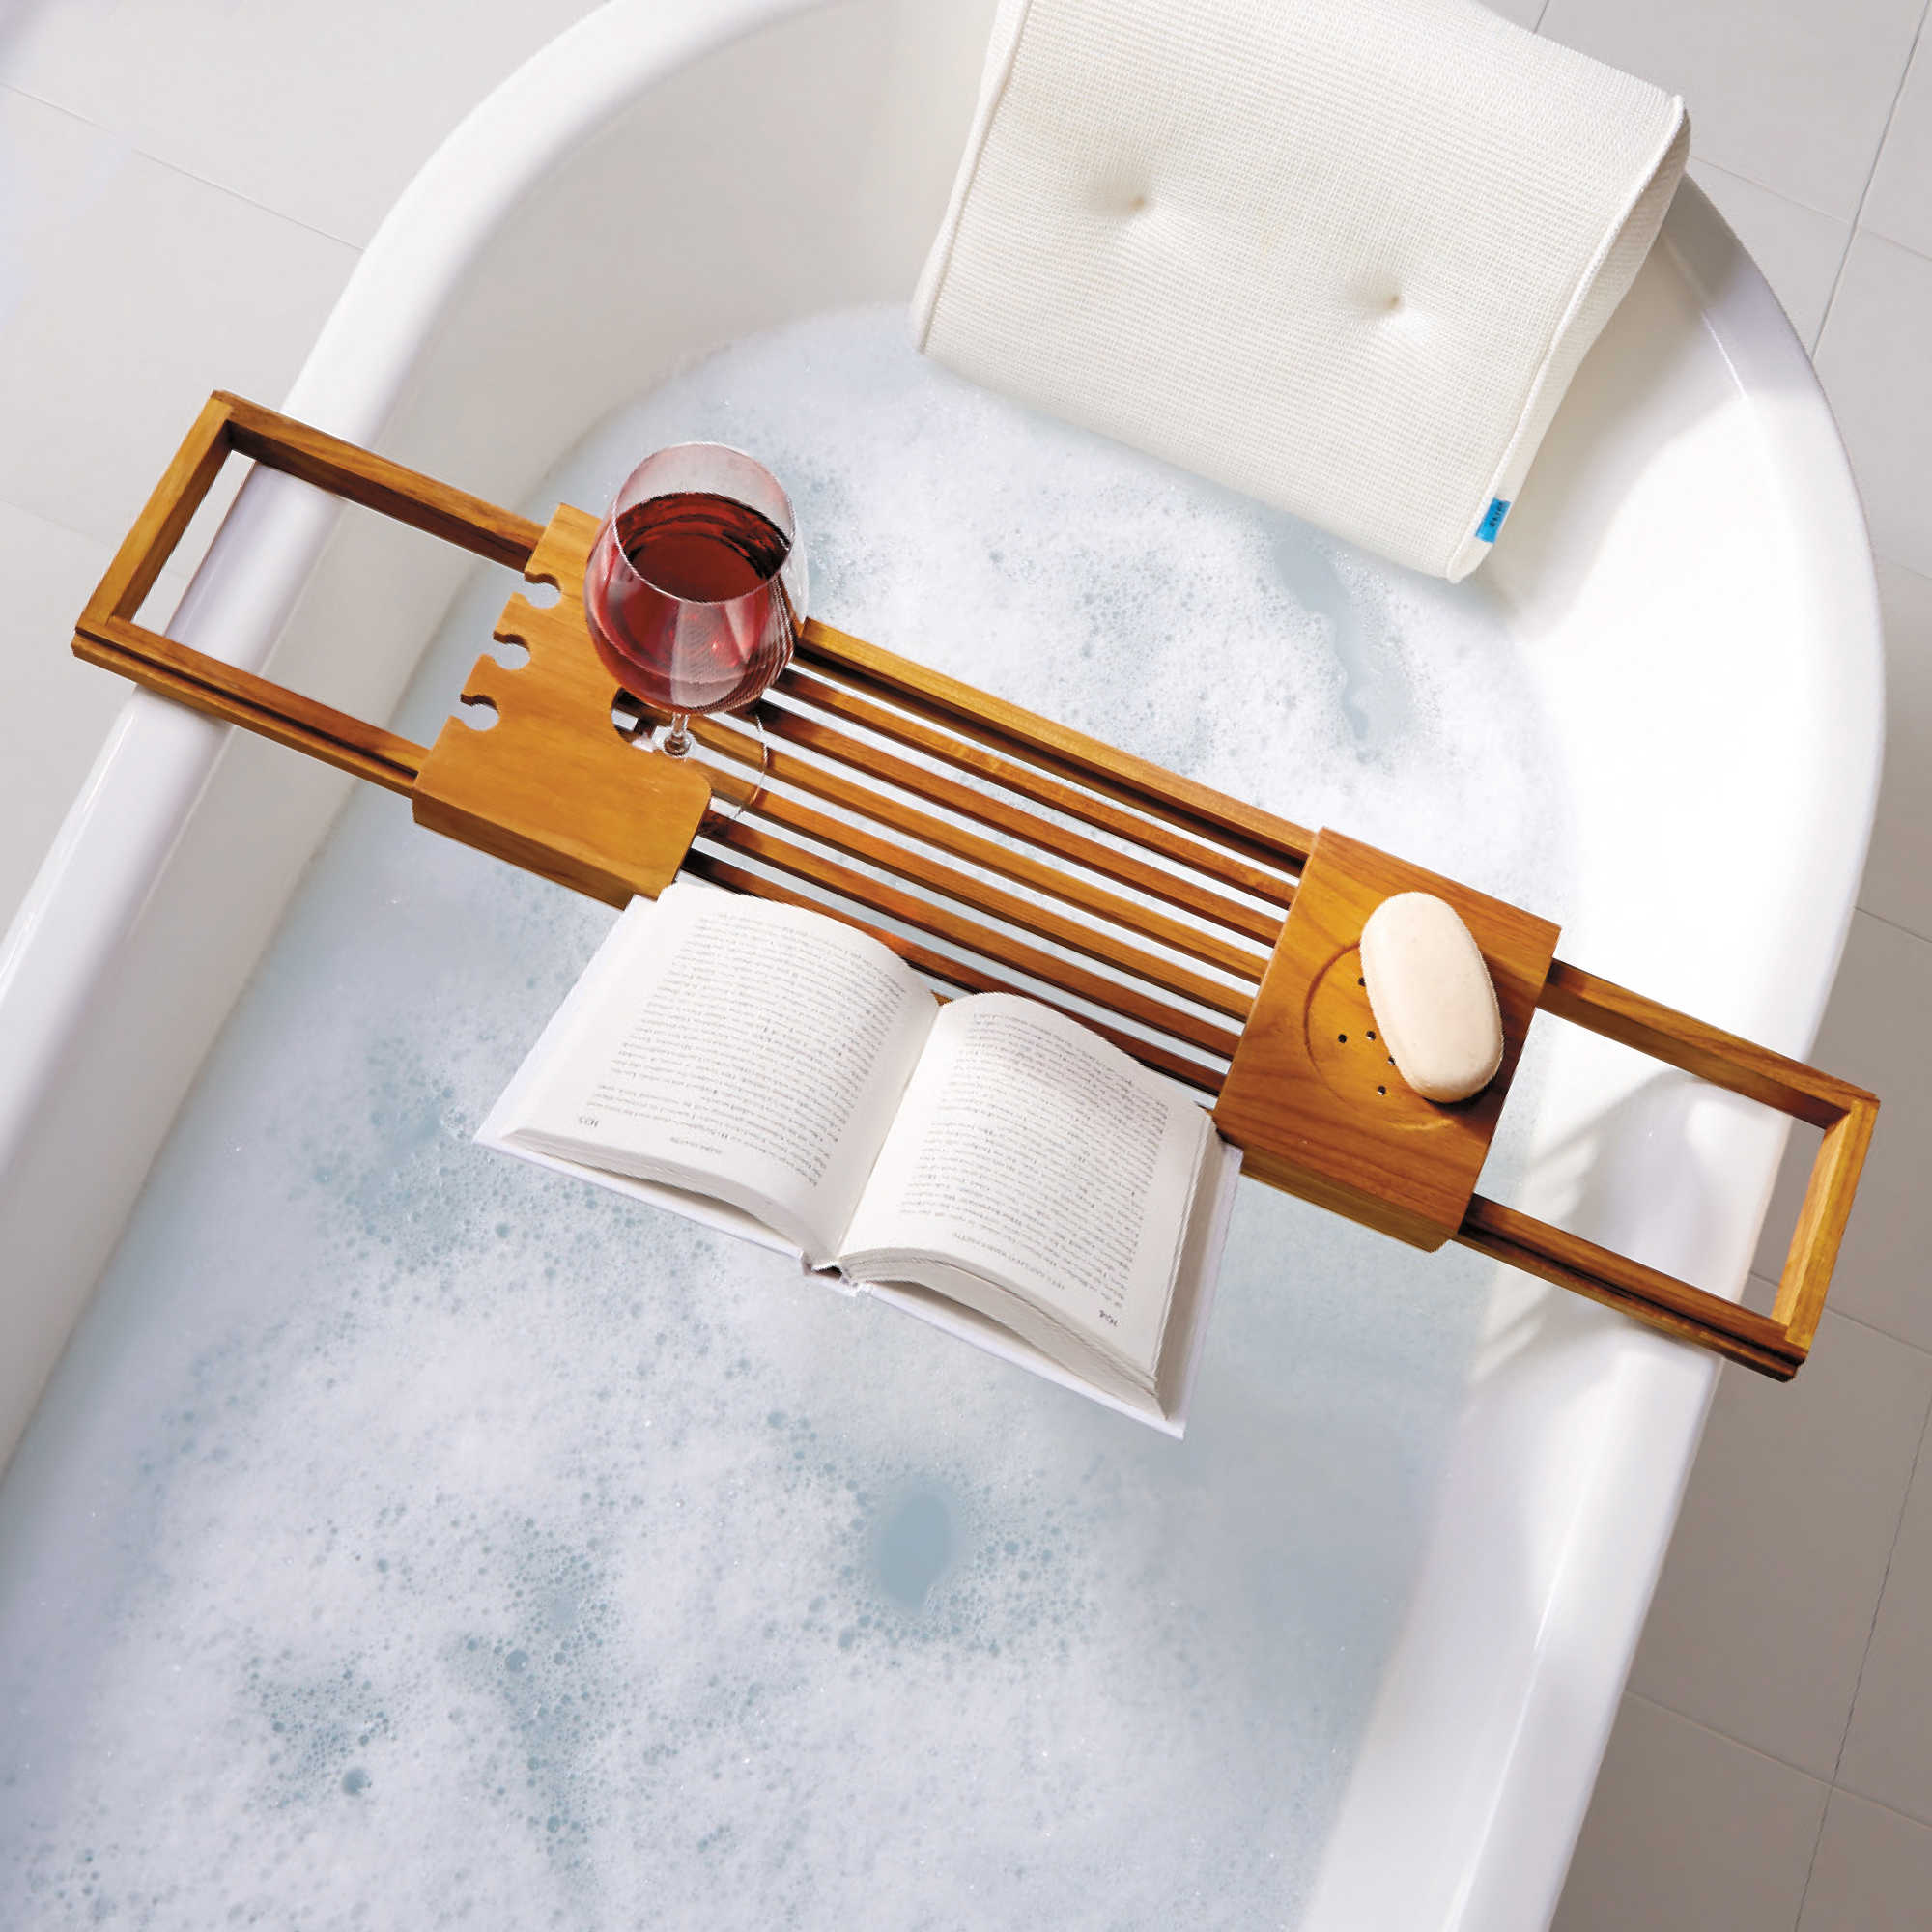 Wine And Book Holder For Bathtub - Bathtub Ideas